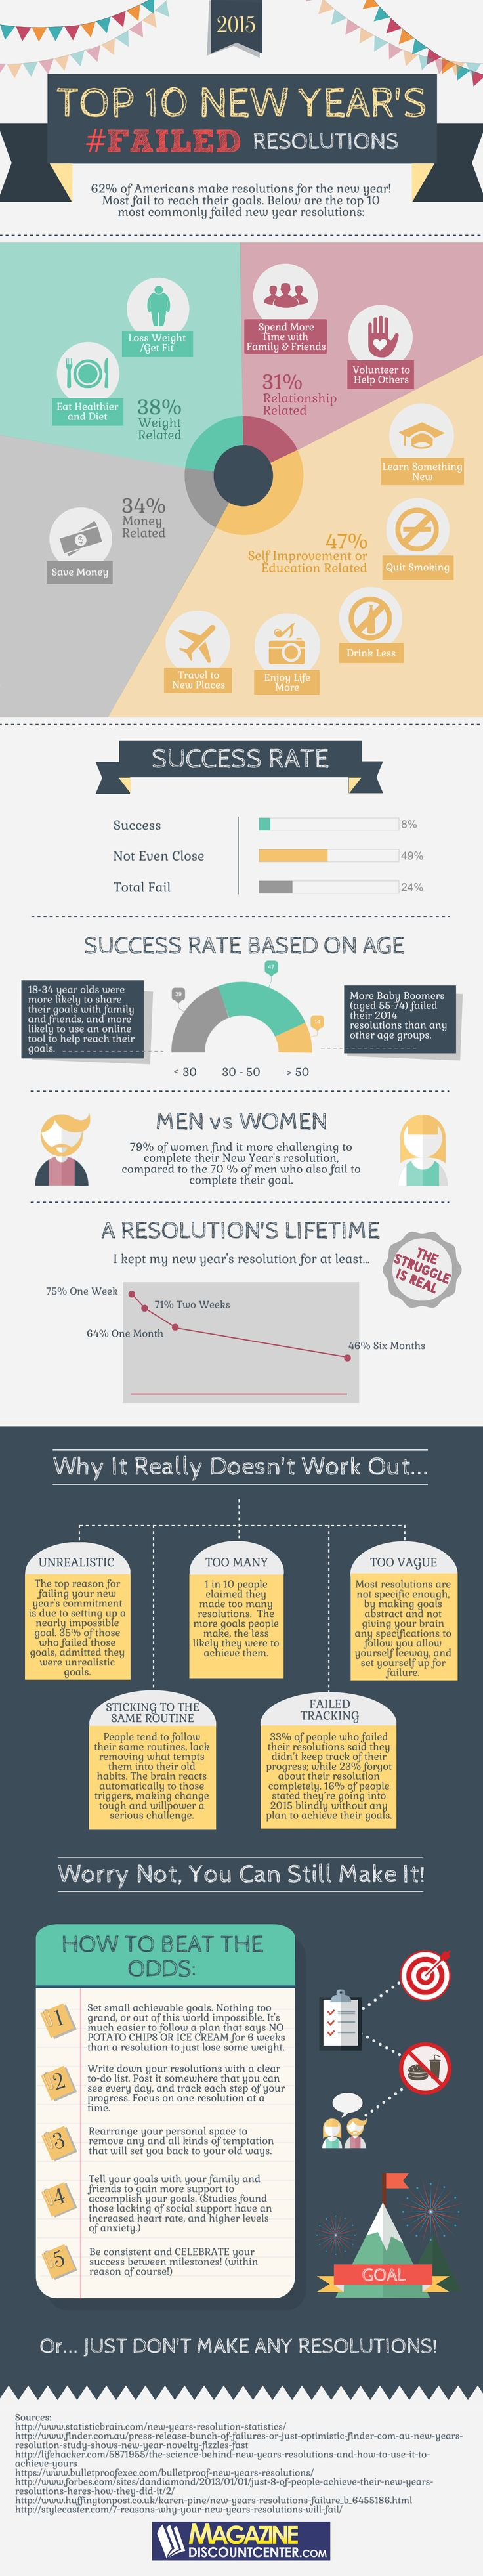 Top 10 Failed New Year's Resolutions infographic